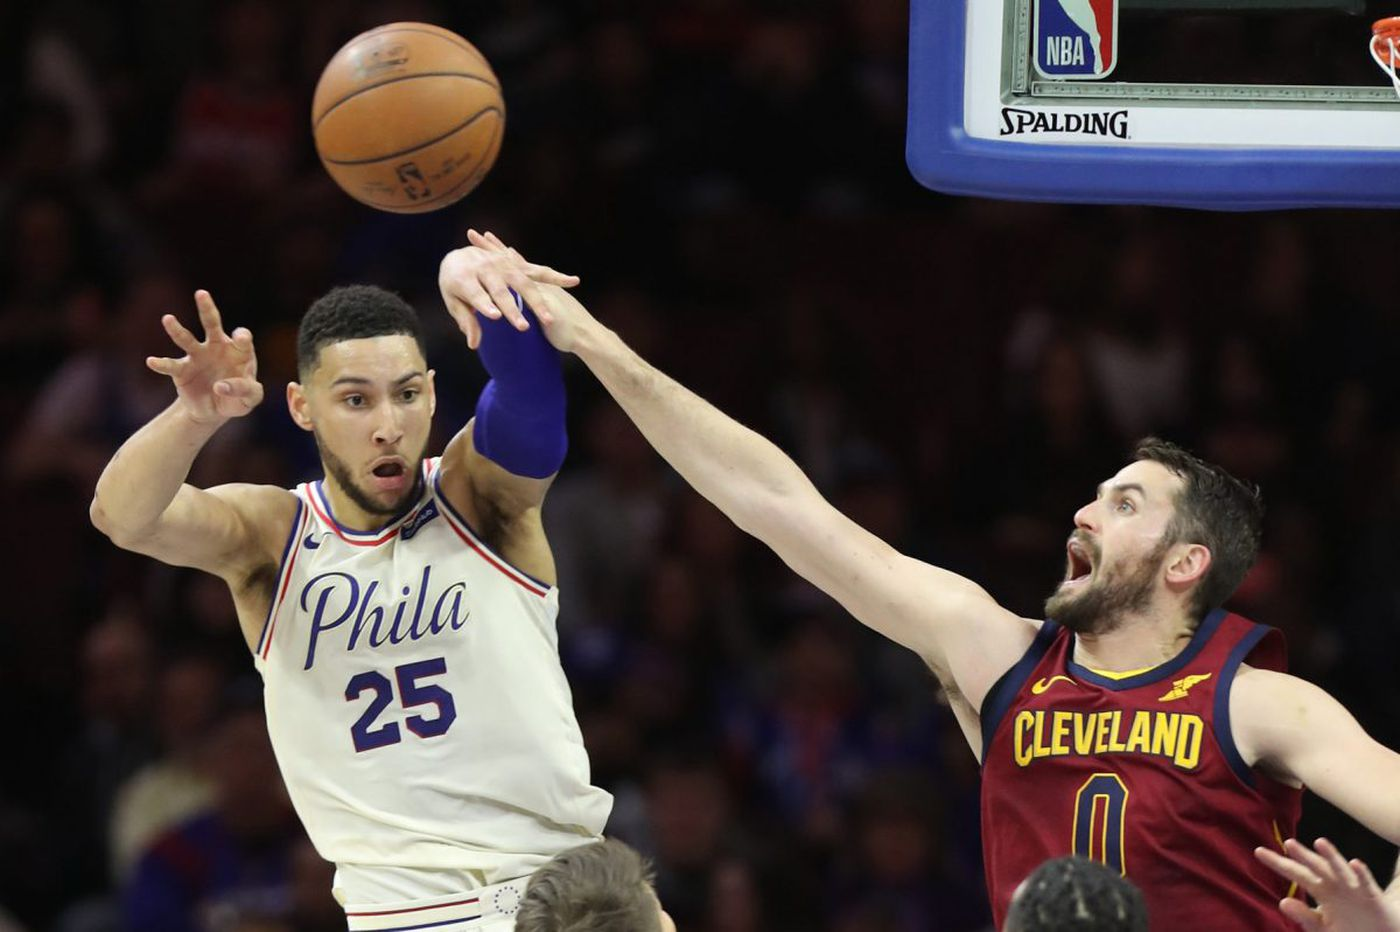 Sixers hold off LeBron James, Cavaliers behind Ben Simmons triple-double to reach No. 3 seed